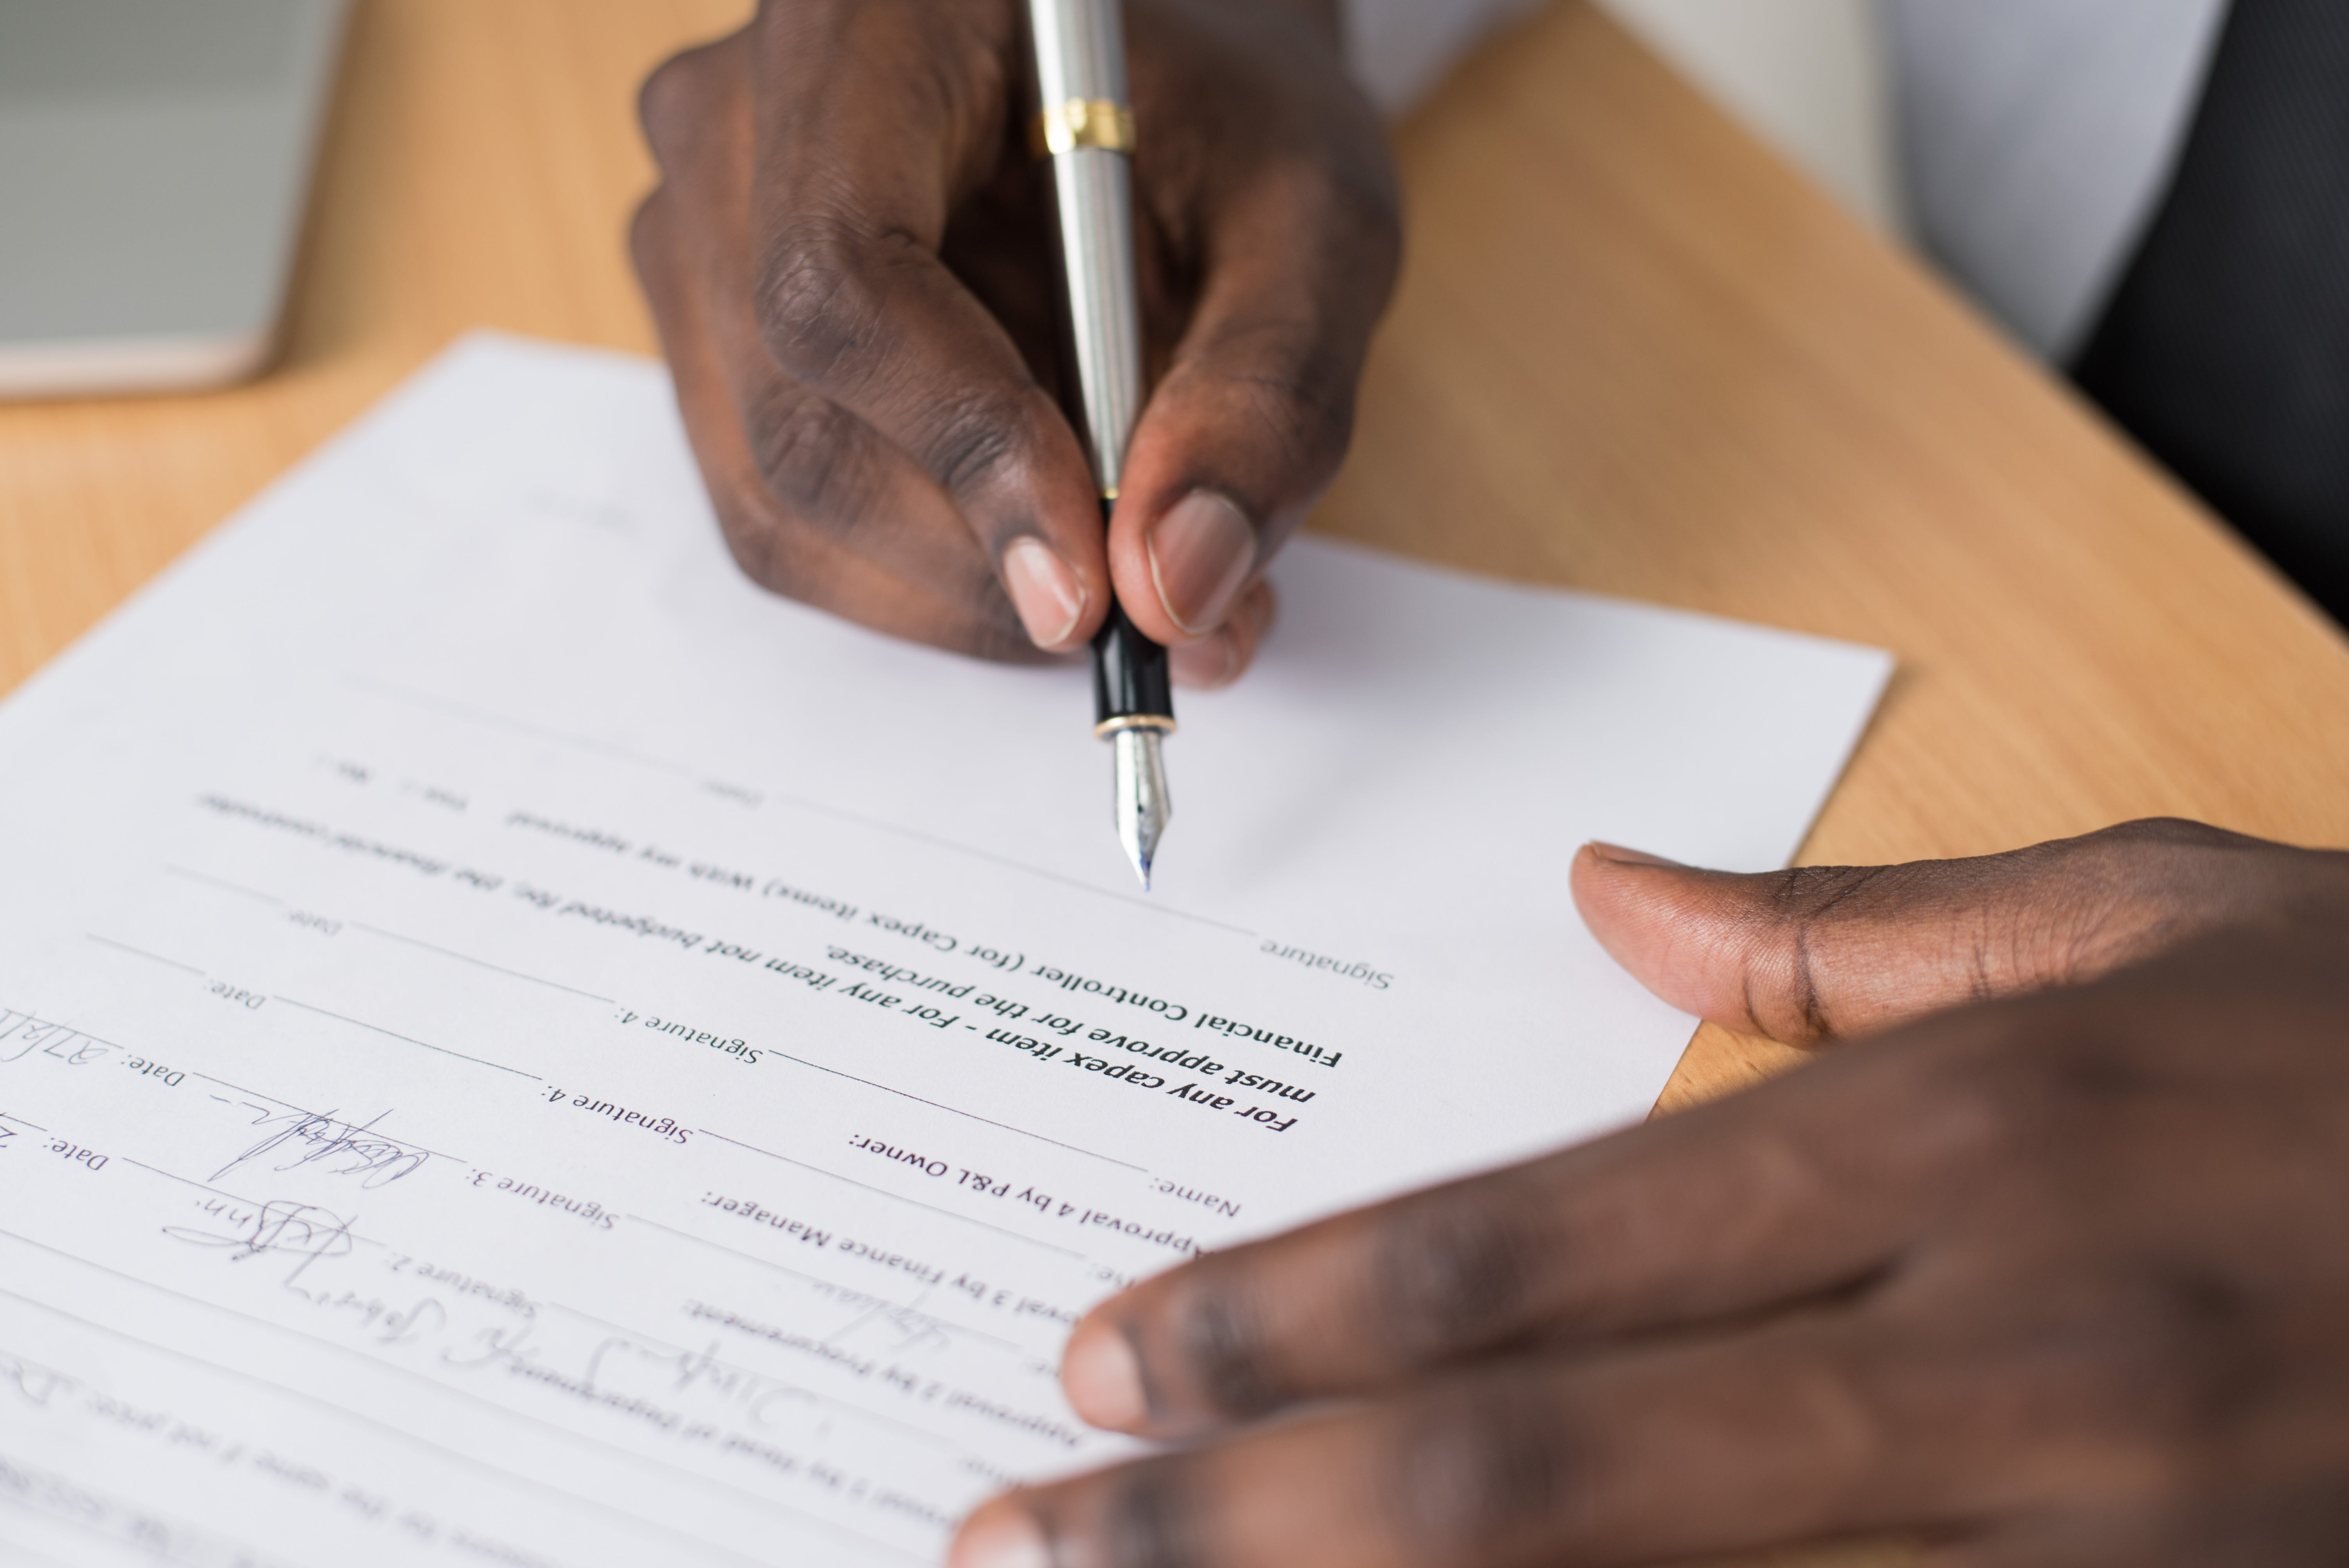 Close-up Photography of Person Writing on White Paper